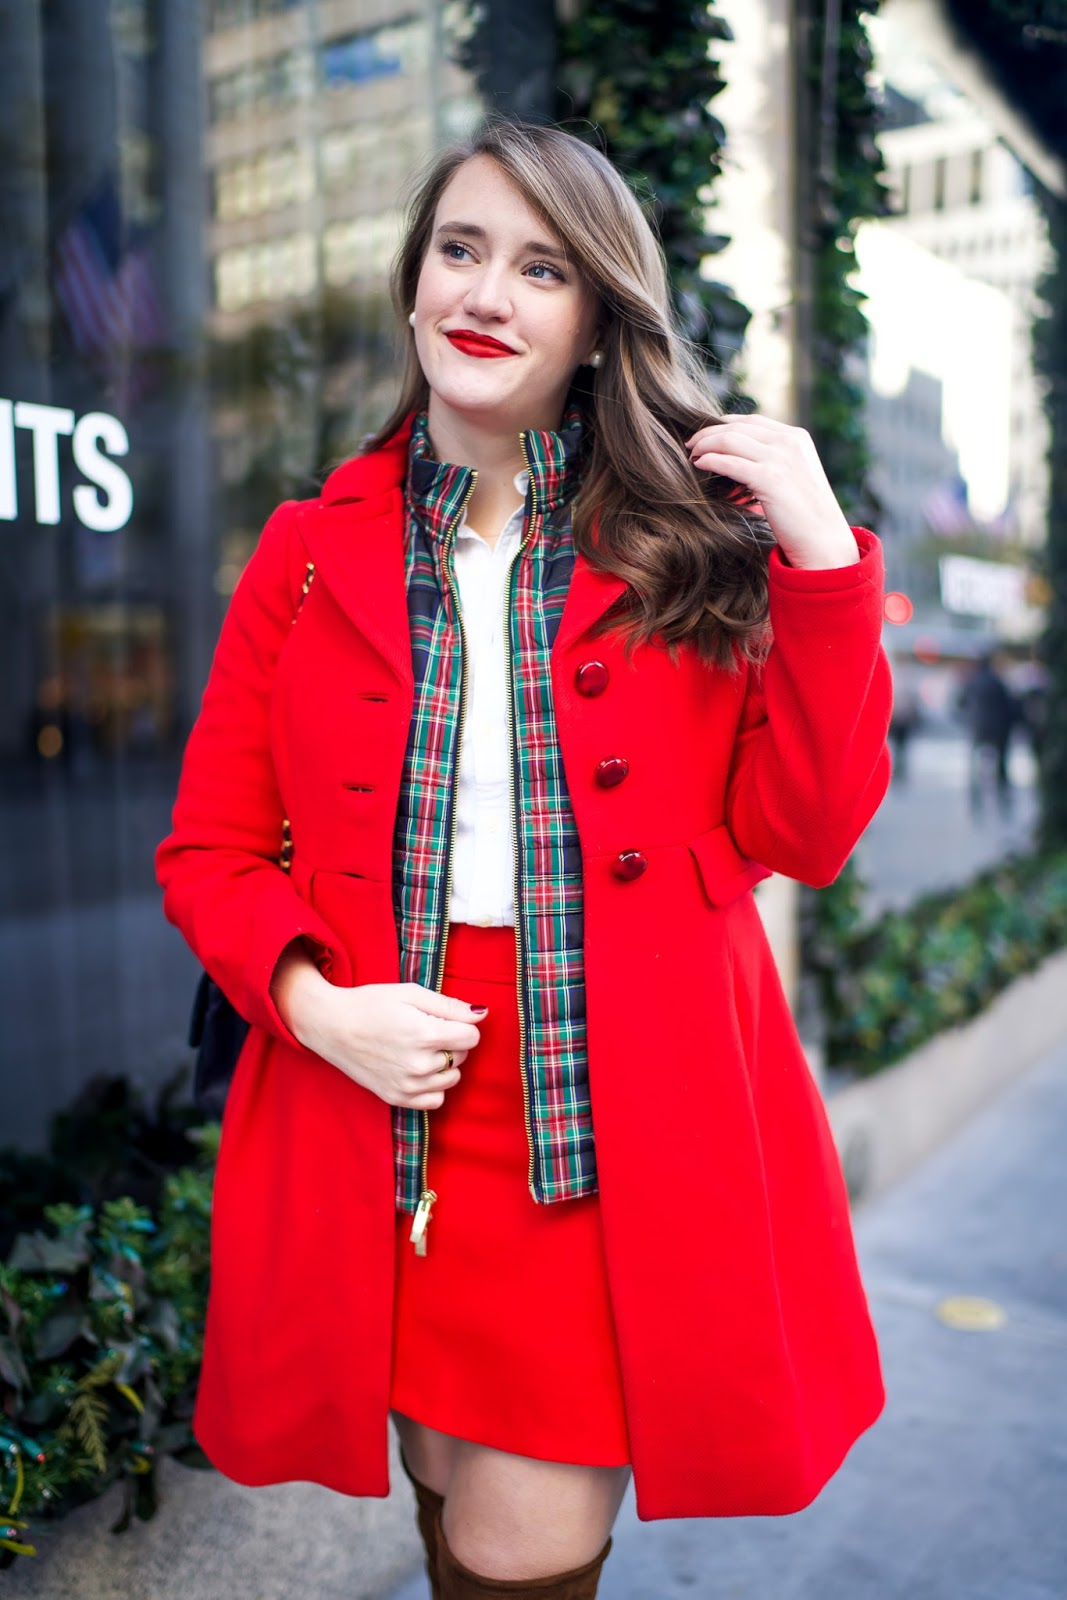 J. Crew Wool Mini Skirt, Helene Berman Wool Coat, red coat